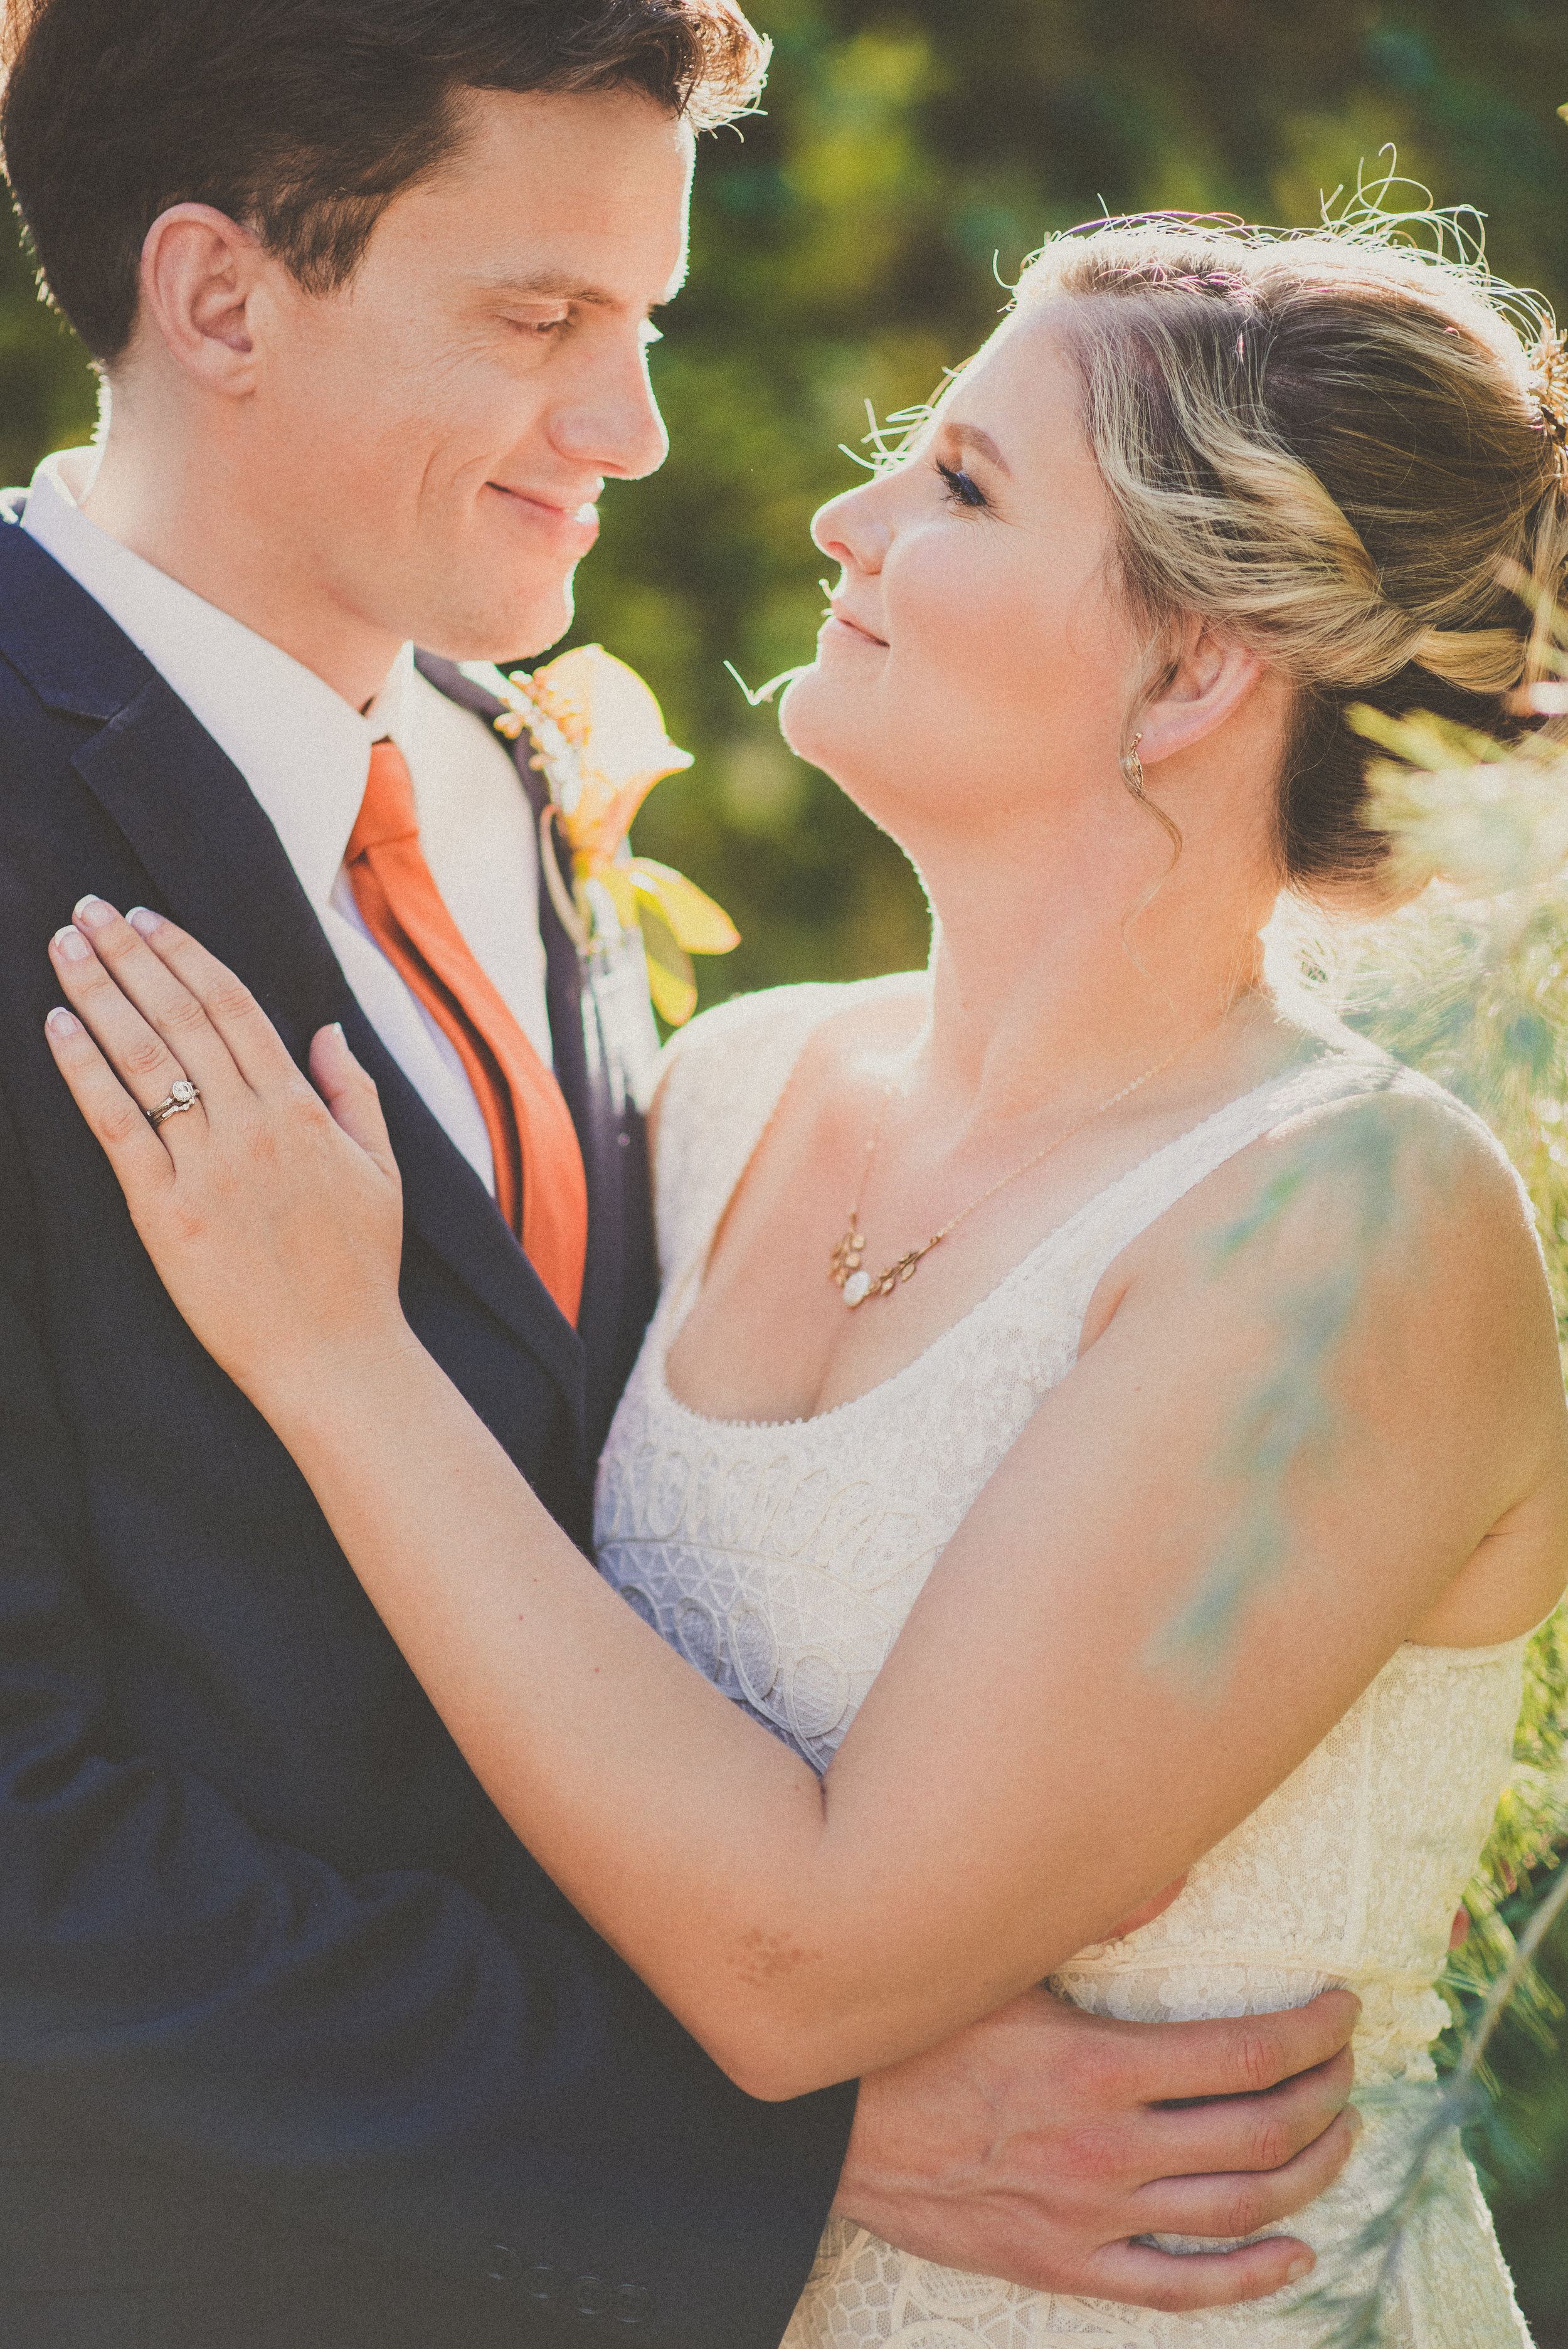 McDonald Wedding - Bride & Groom-9.jpg